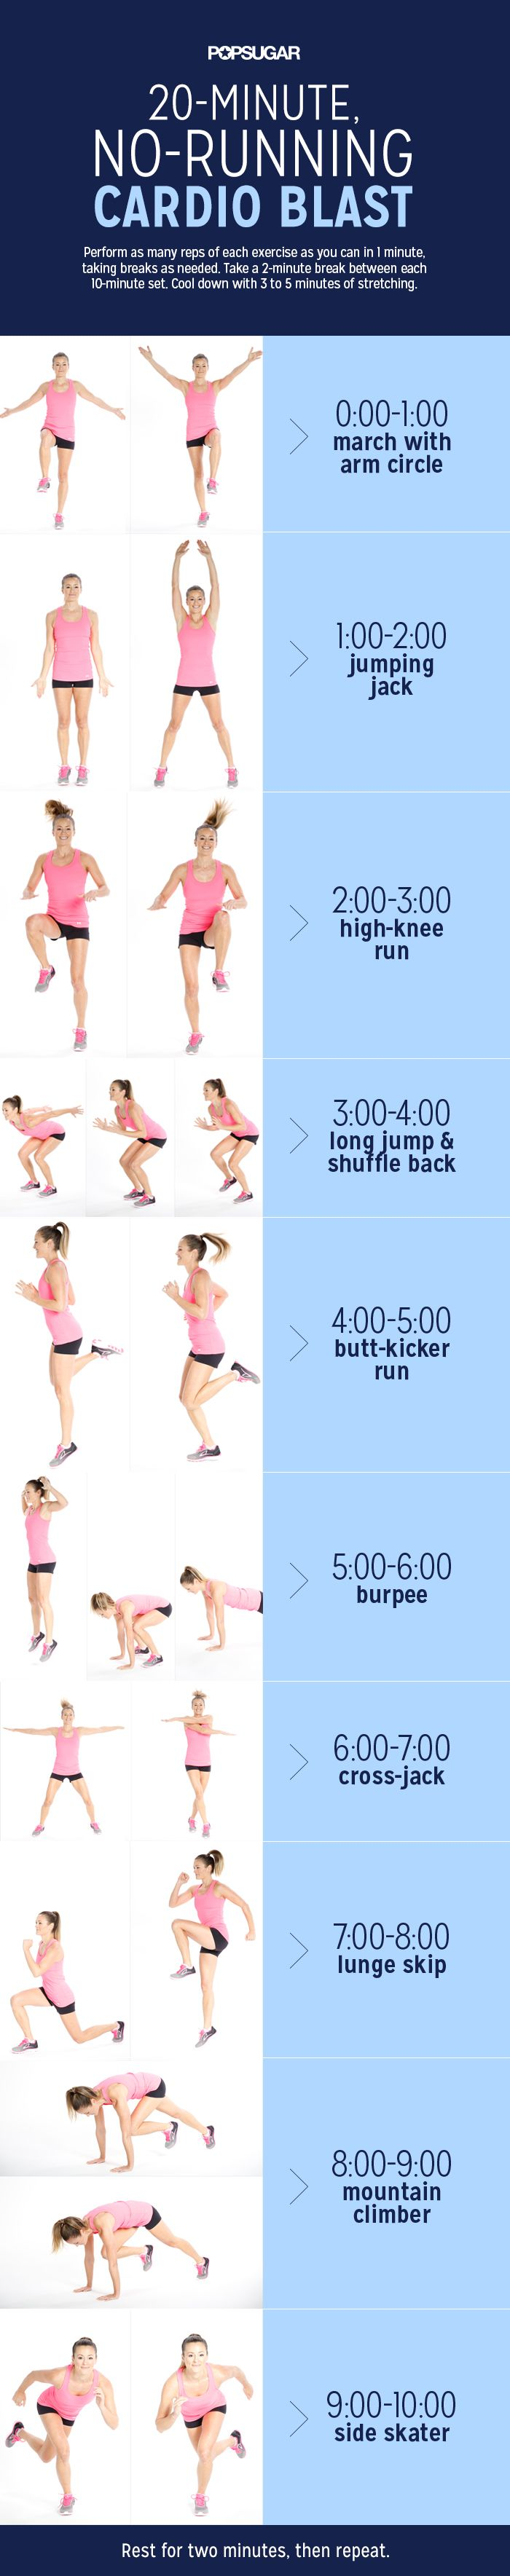 20-Minute No-Running Cardio Blast | POPSUGAR Fitness UK